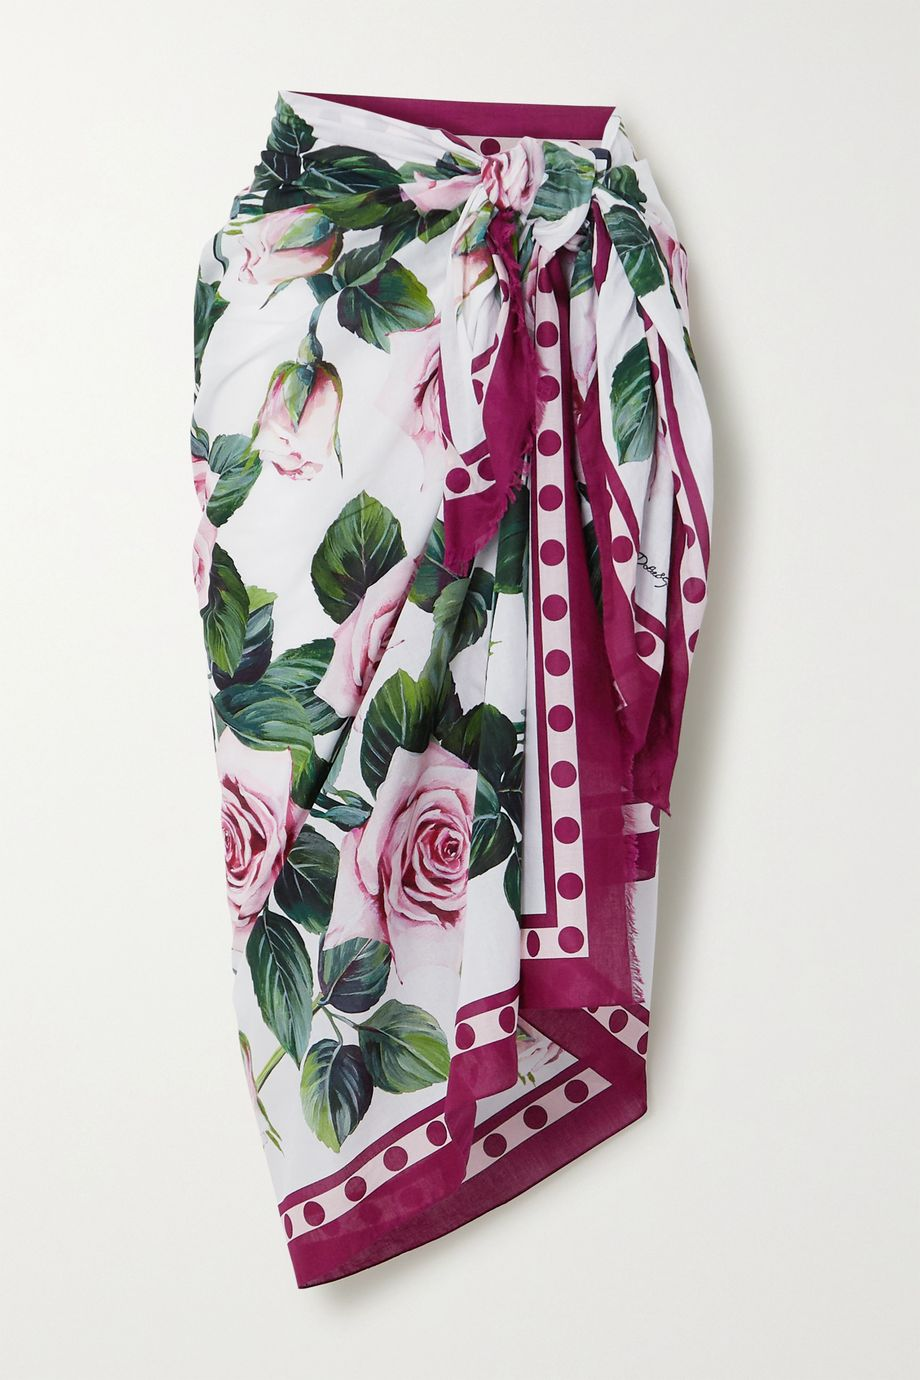 Dolce & Gabbana Fringed floral-print cotton-voile pareo